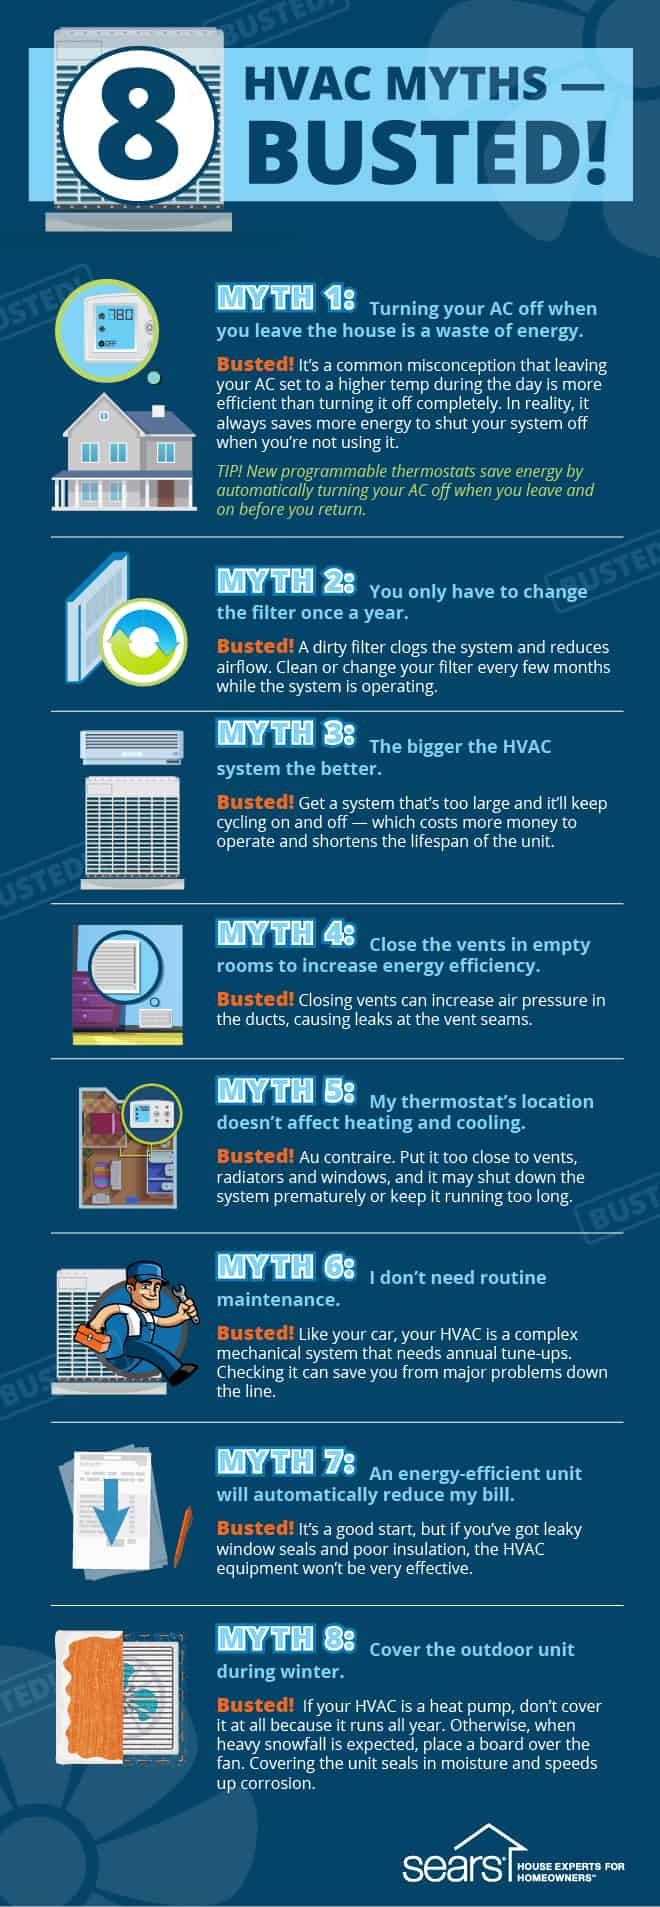 5 Home HVAC Maintenance Tips with 8 hvac myths busted